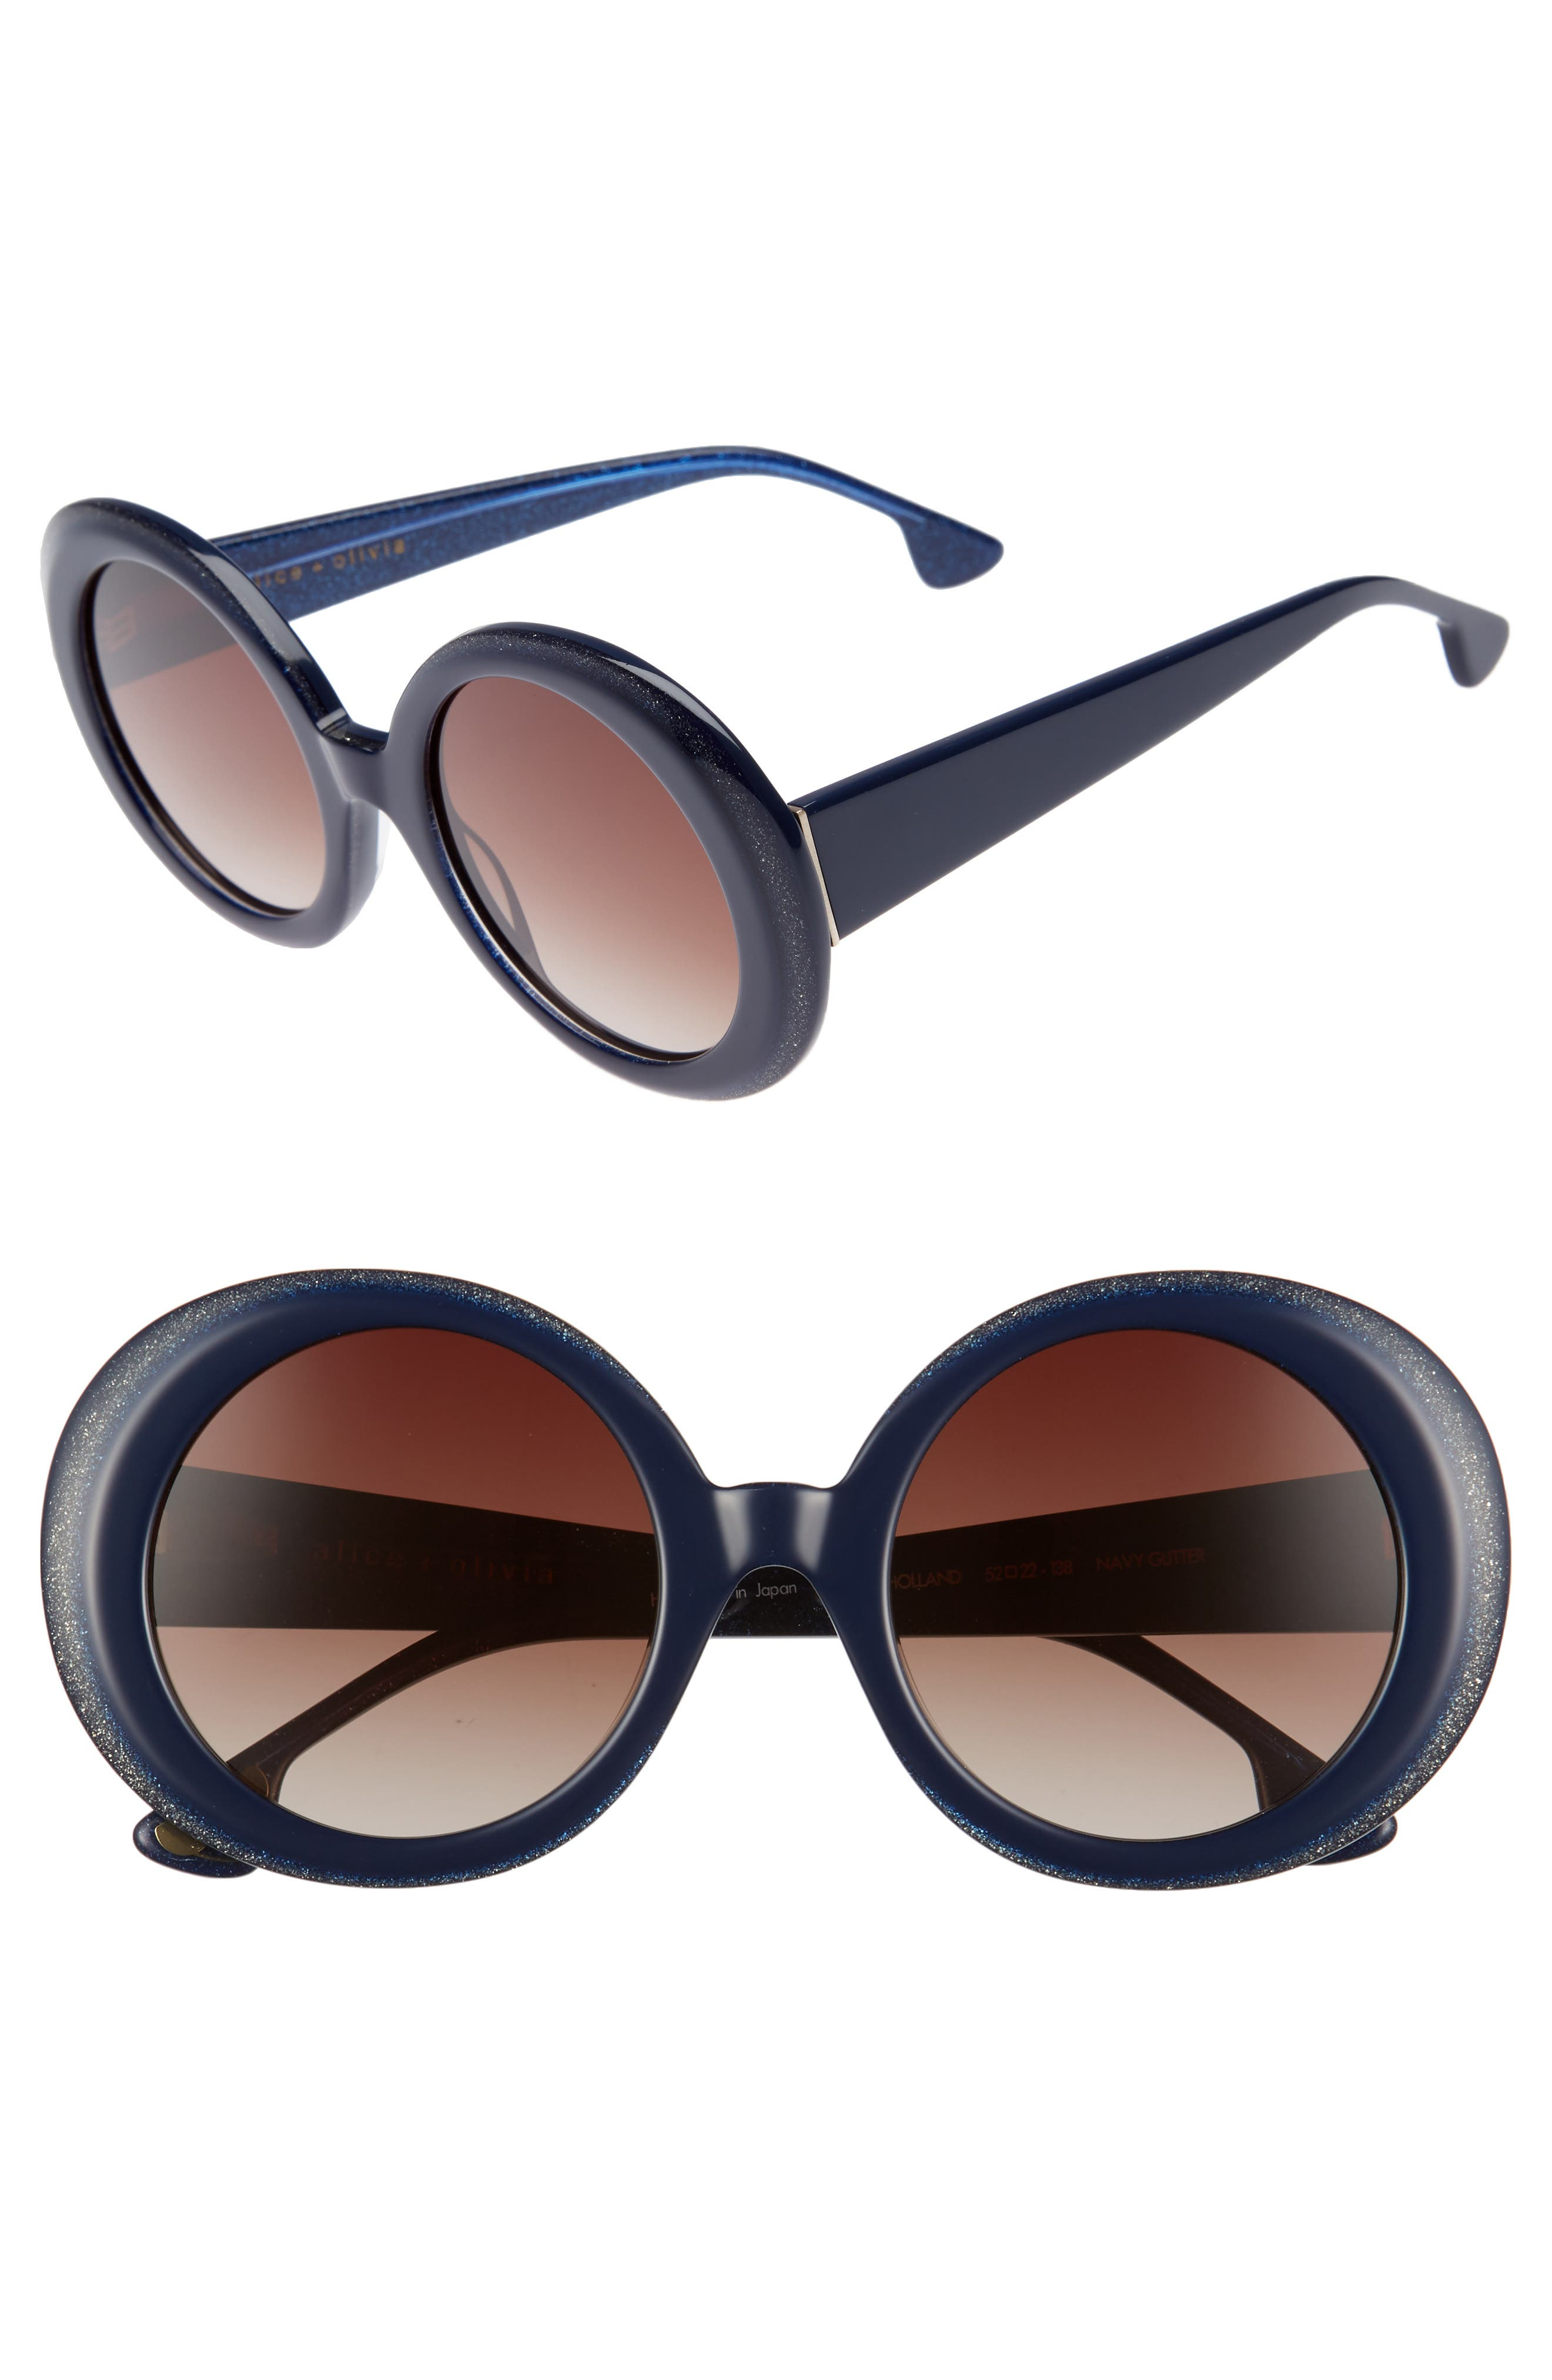 Mulholland 52mm Round Gradient Sunglasses,                         Main,                         color,